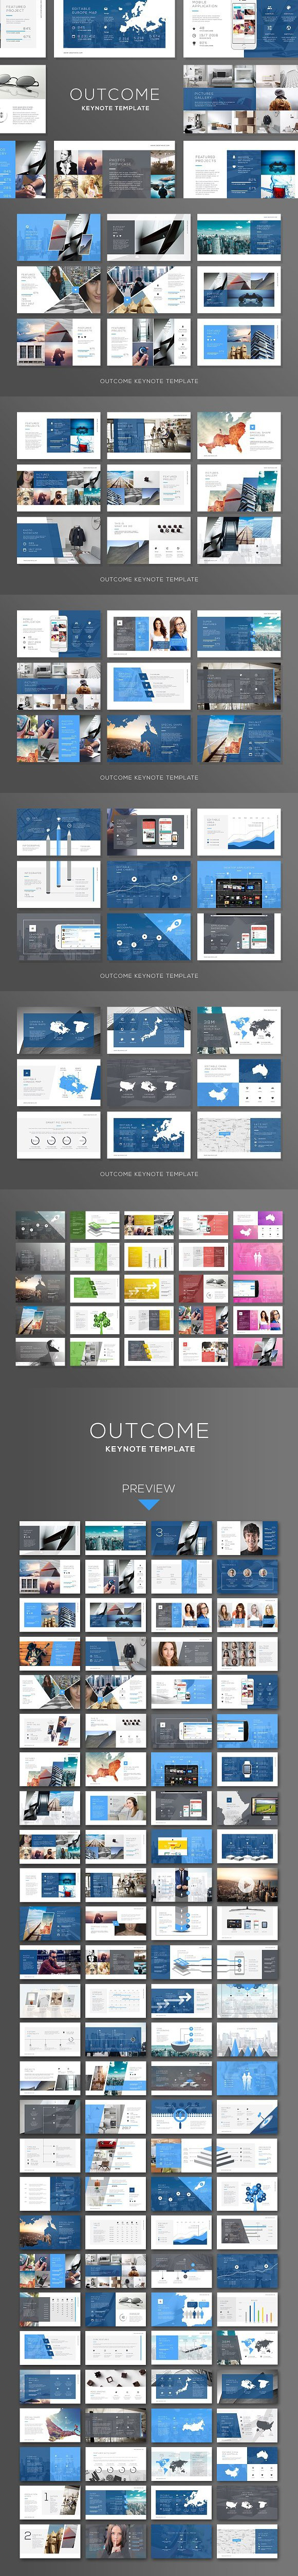 Outcome Keynote. Infographic Templates. $15.00 | Flyer | Pinterest